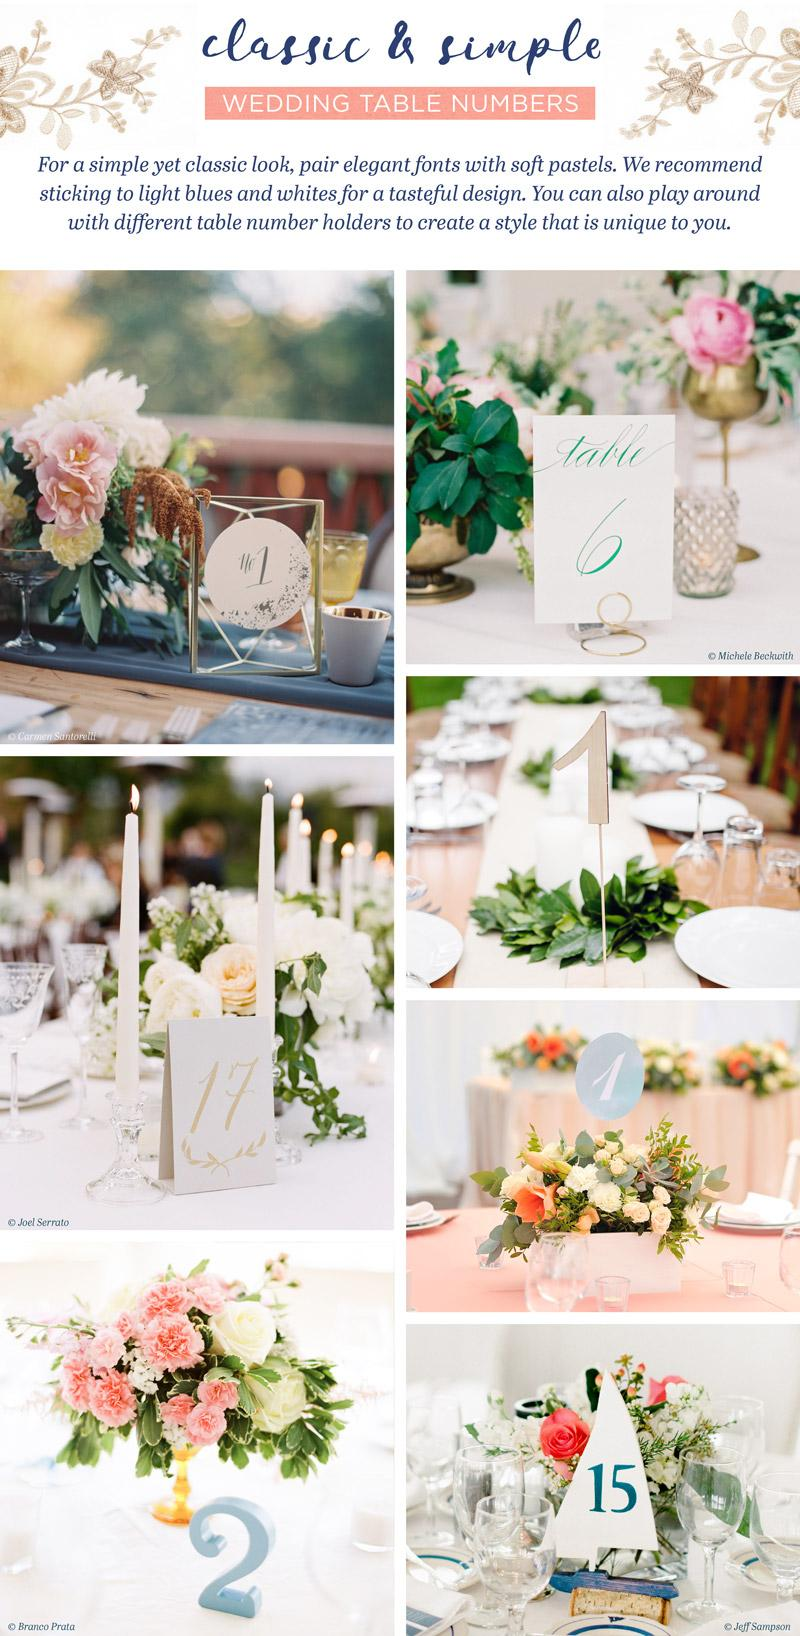 28 Unique Wedding Table Number Ideas FTD Flowers Philly In Love Philadelphia Wedding Inspiration